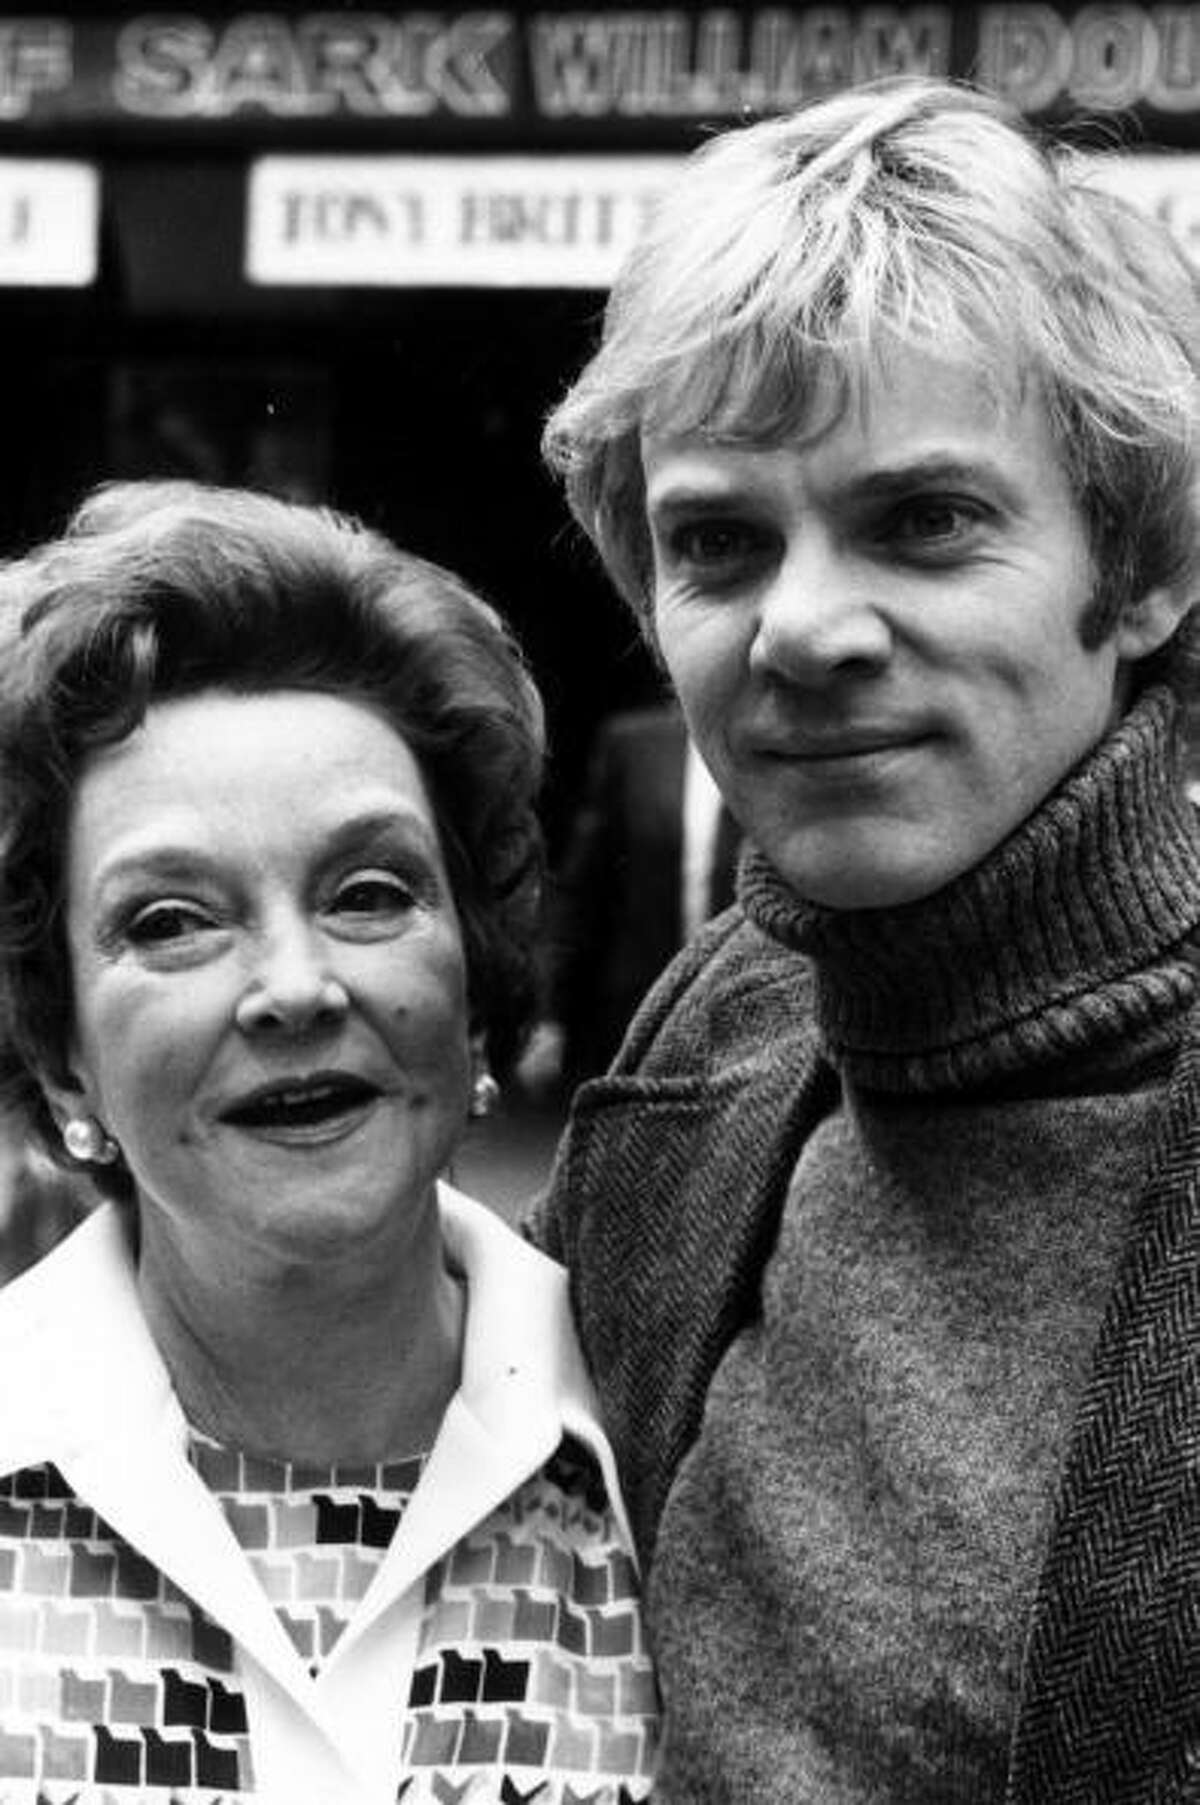 BERYLComic actress Beryl Reid, shown in 1975 with co-star Malcolm McDowell of